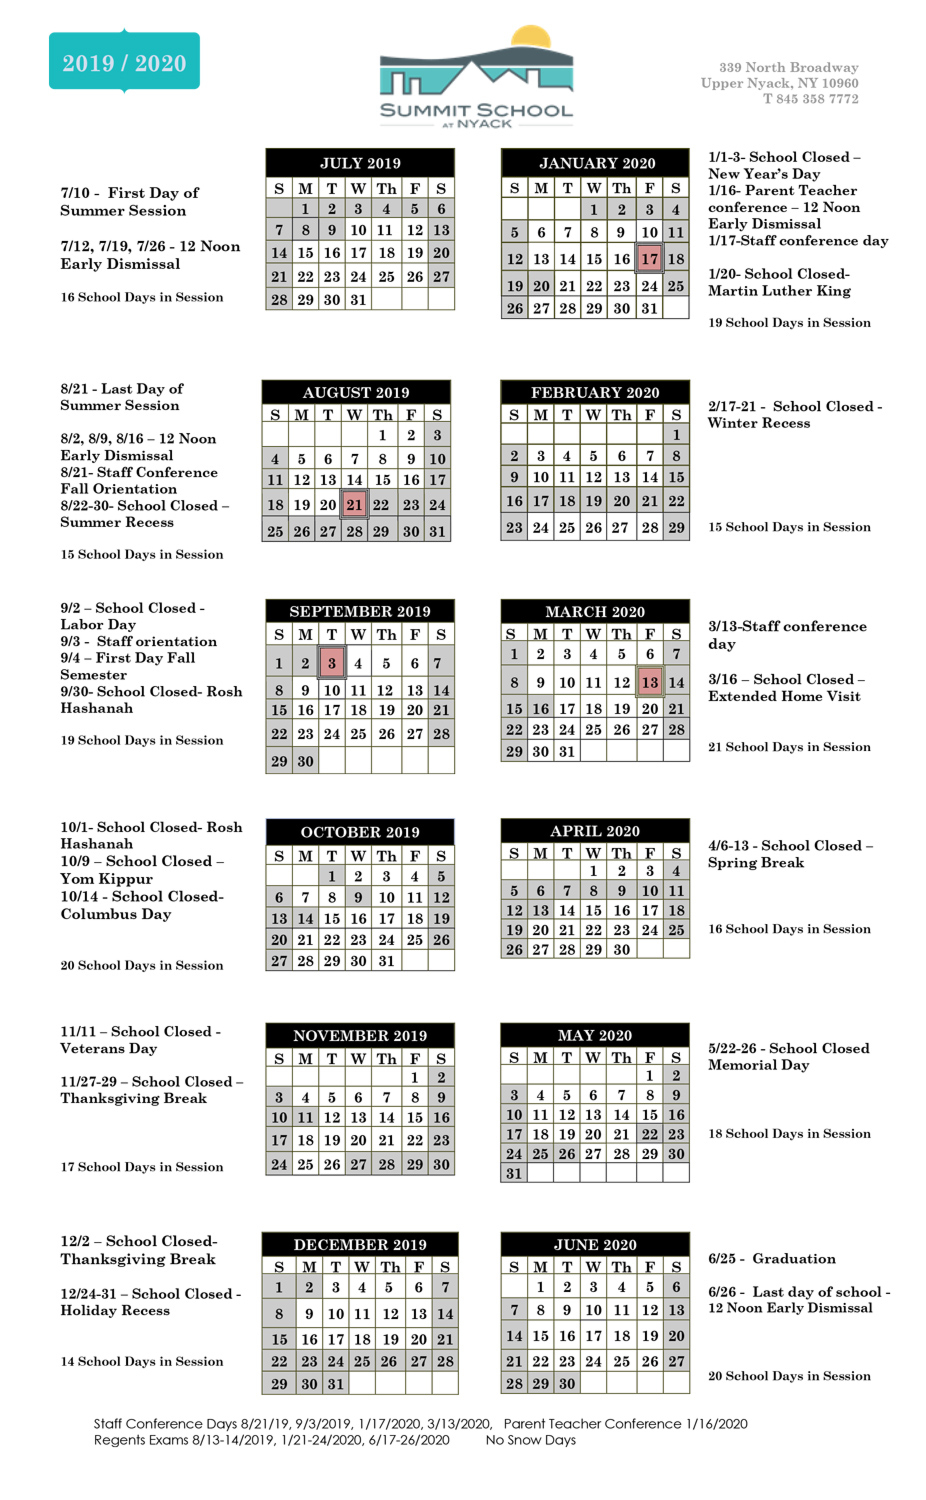 School Calendar - Summit School At Nyack Inside Academic Calender For Middlesex County College For 2021